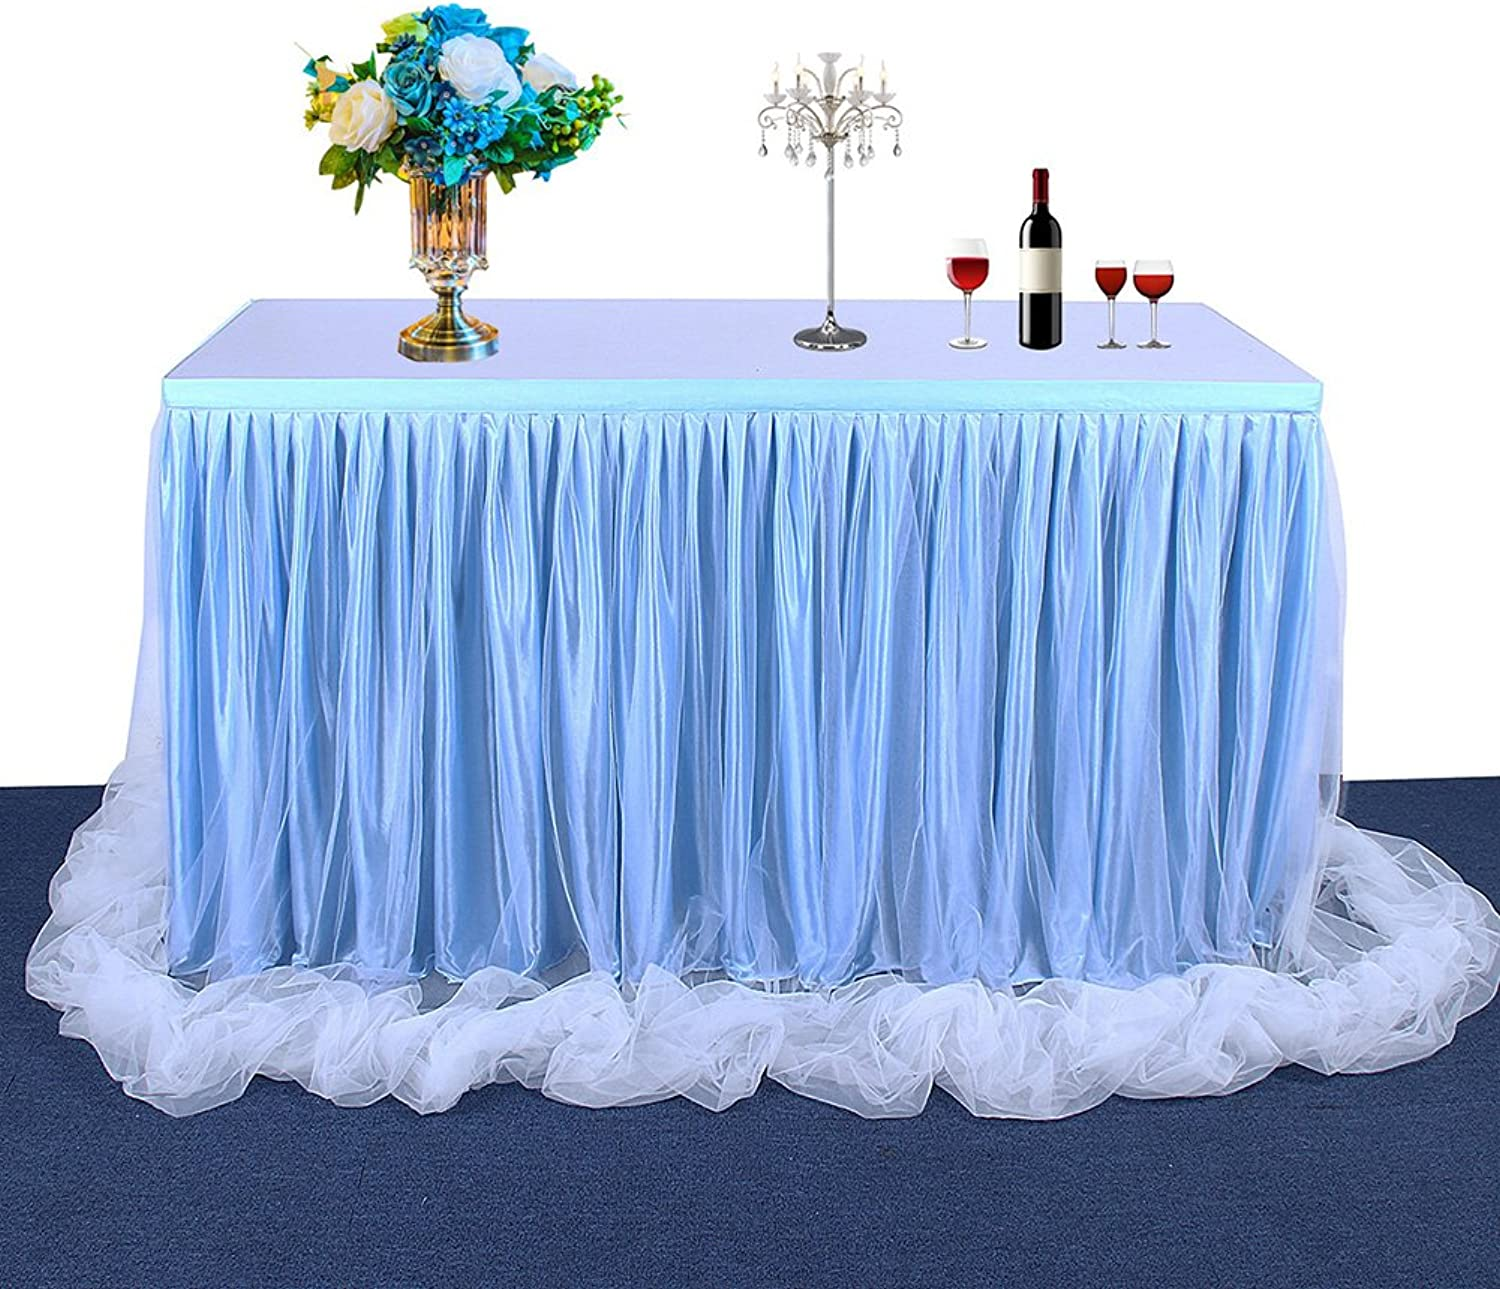 Ocamo Table Skirt Table Decoration Fashion color and Style with Tulle Elegant Party Wedding Decoration(Long Tulle) bluee; 14FT